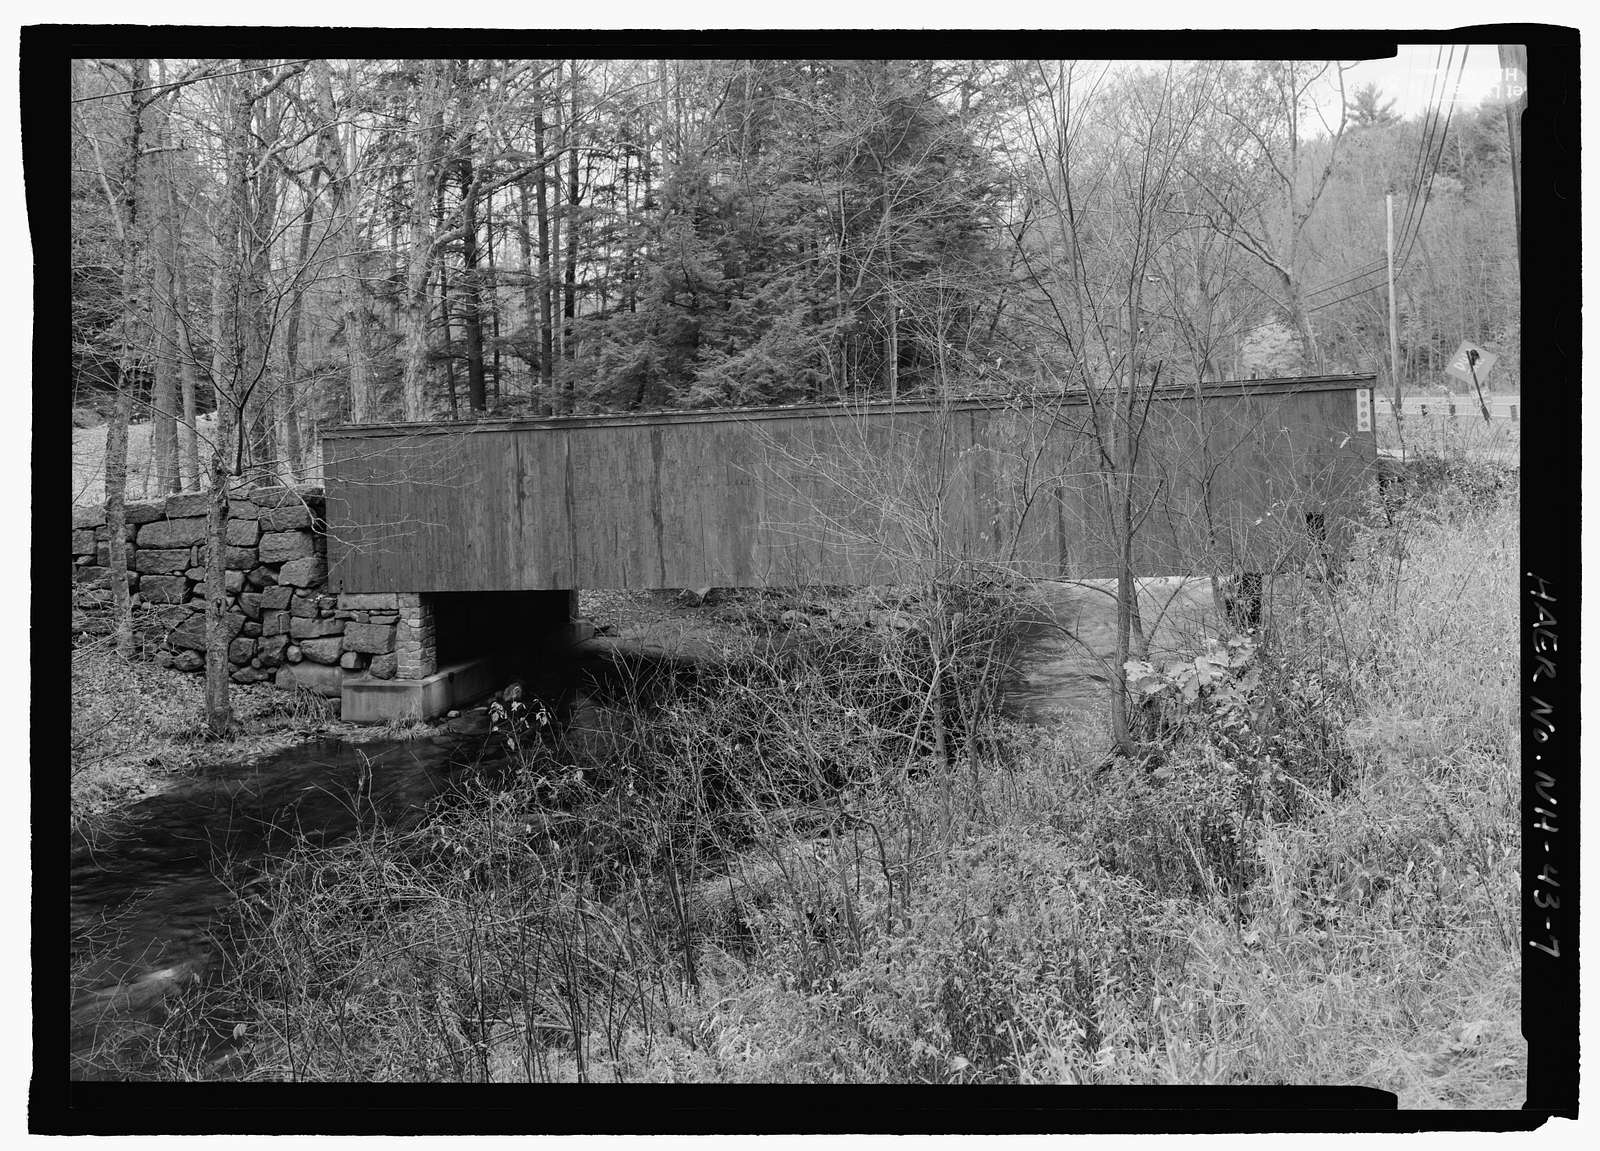 Livermore Bridge, Spanning Blood Brook at Russell Hill Road, Wilton, Hillsborough County, NH